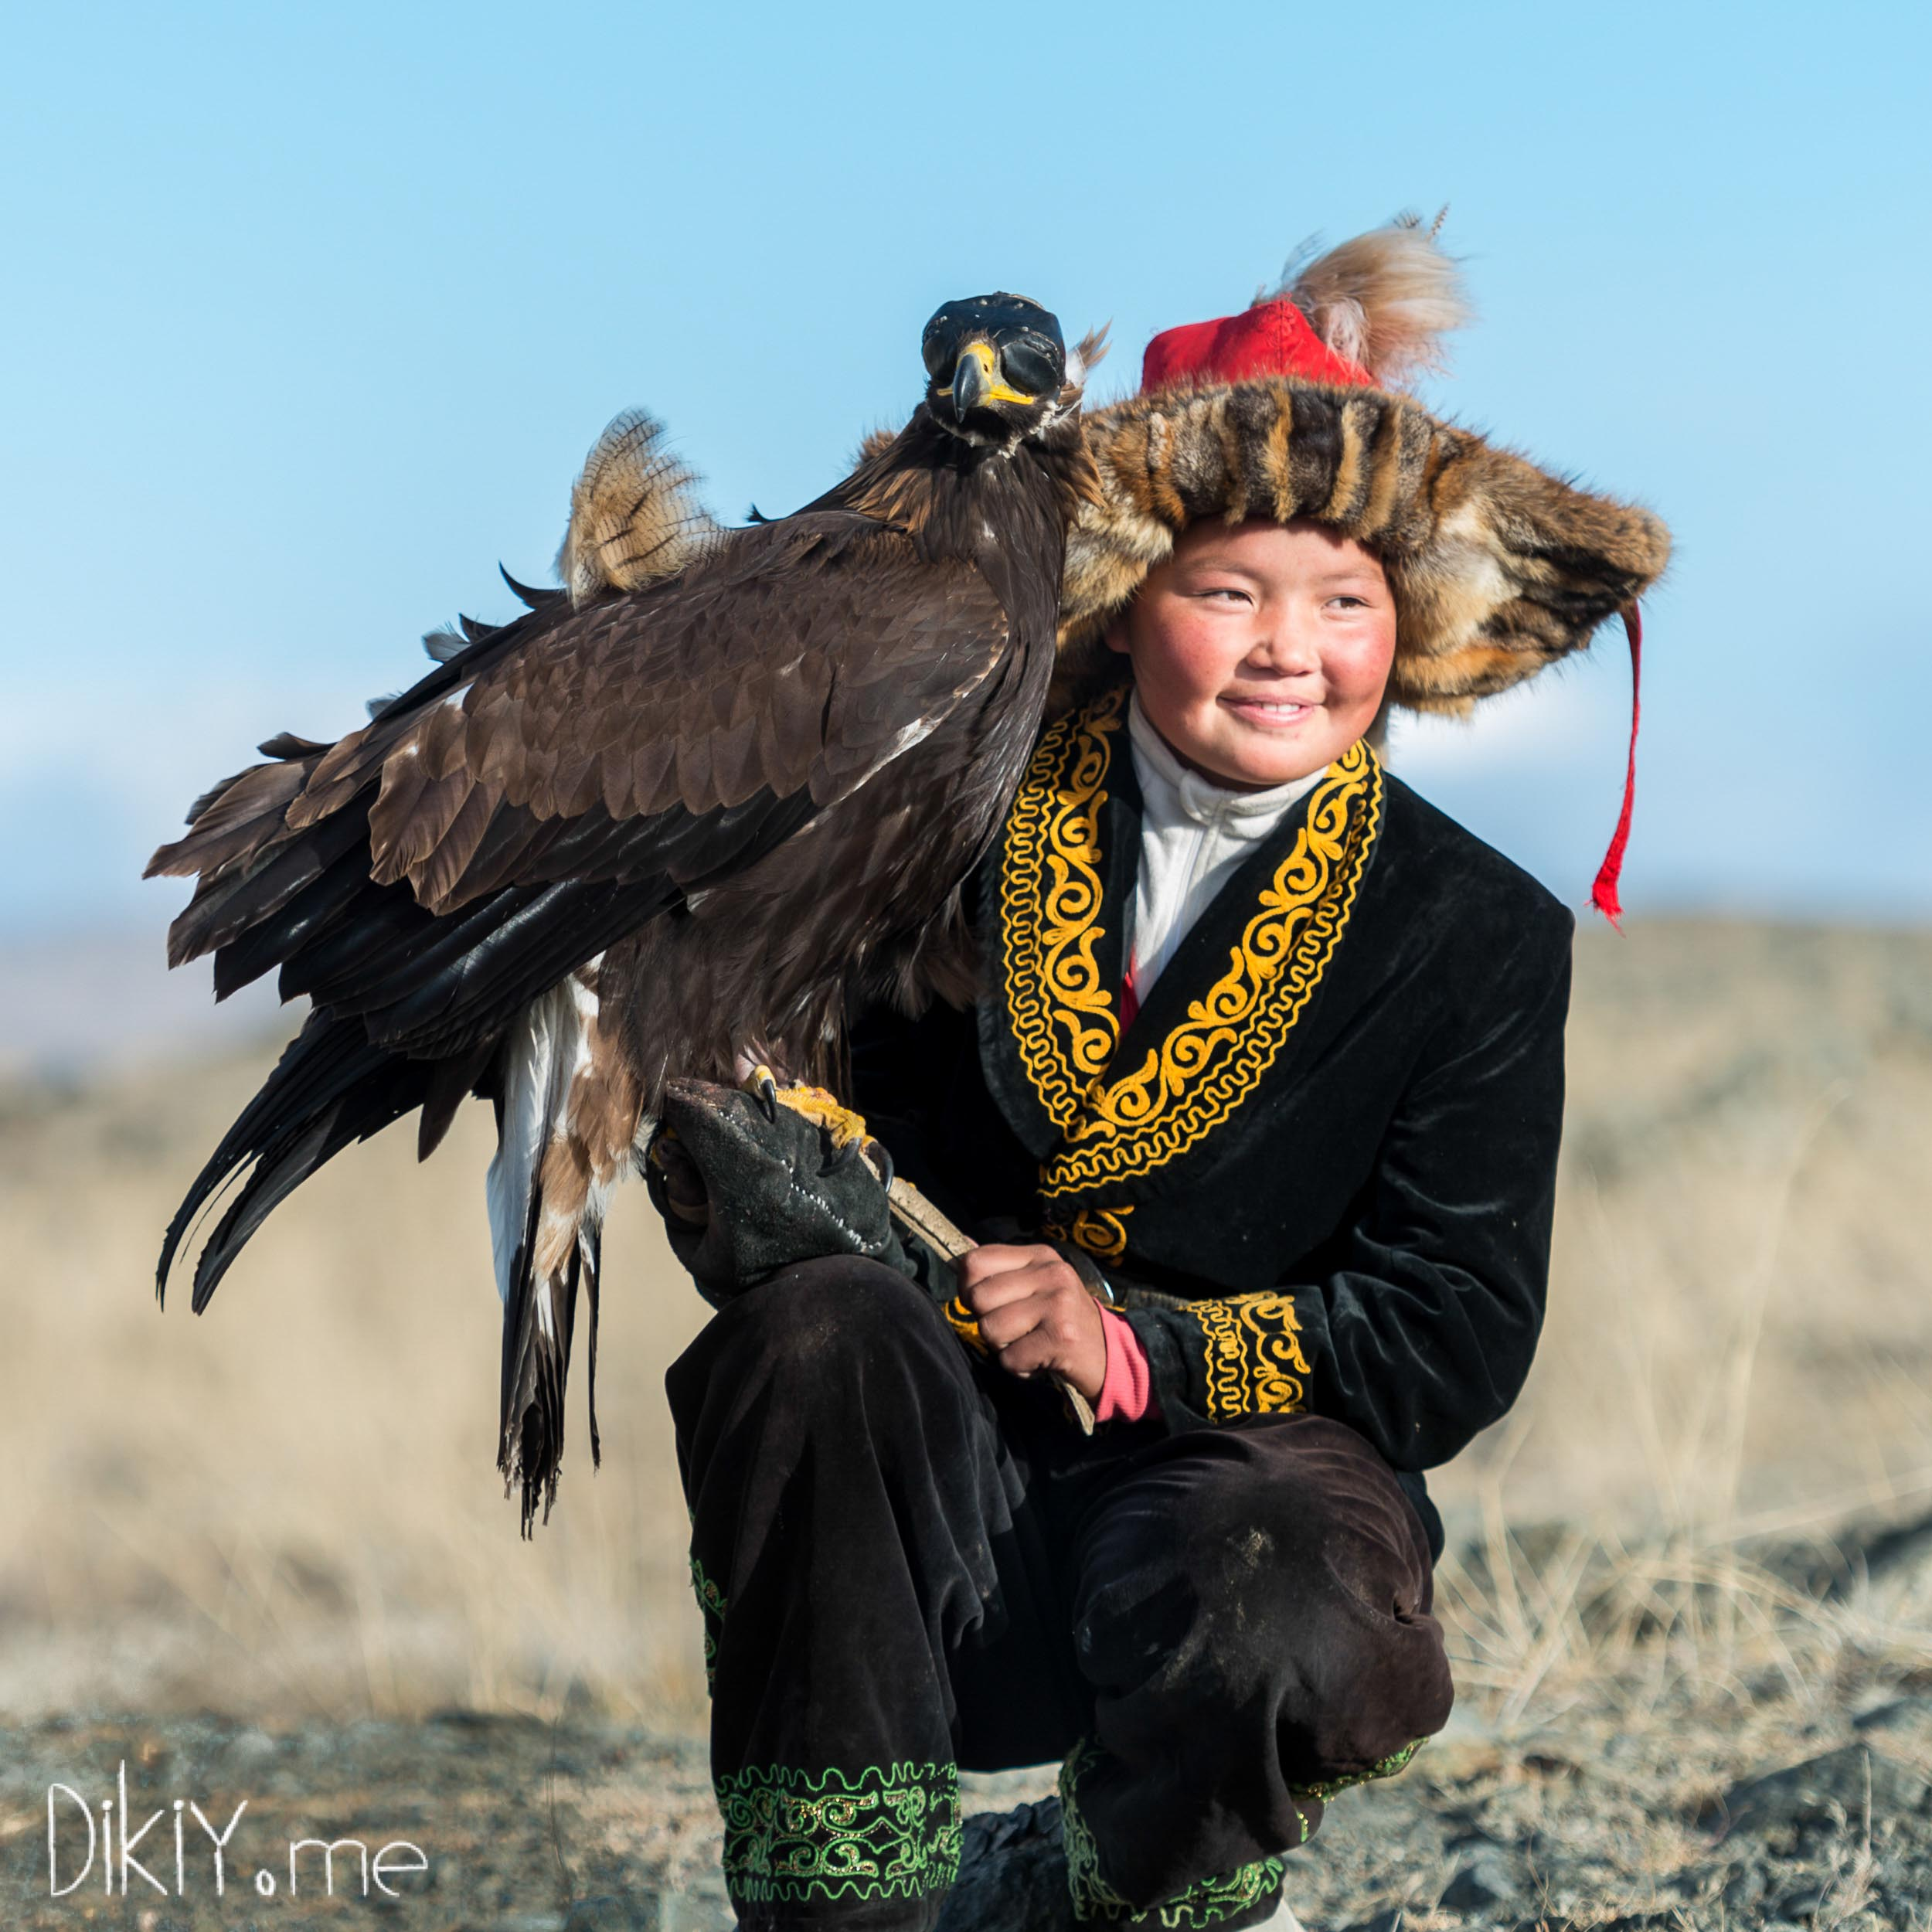 How the Mongolian girls are turned into famous acrobats